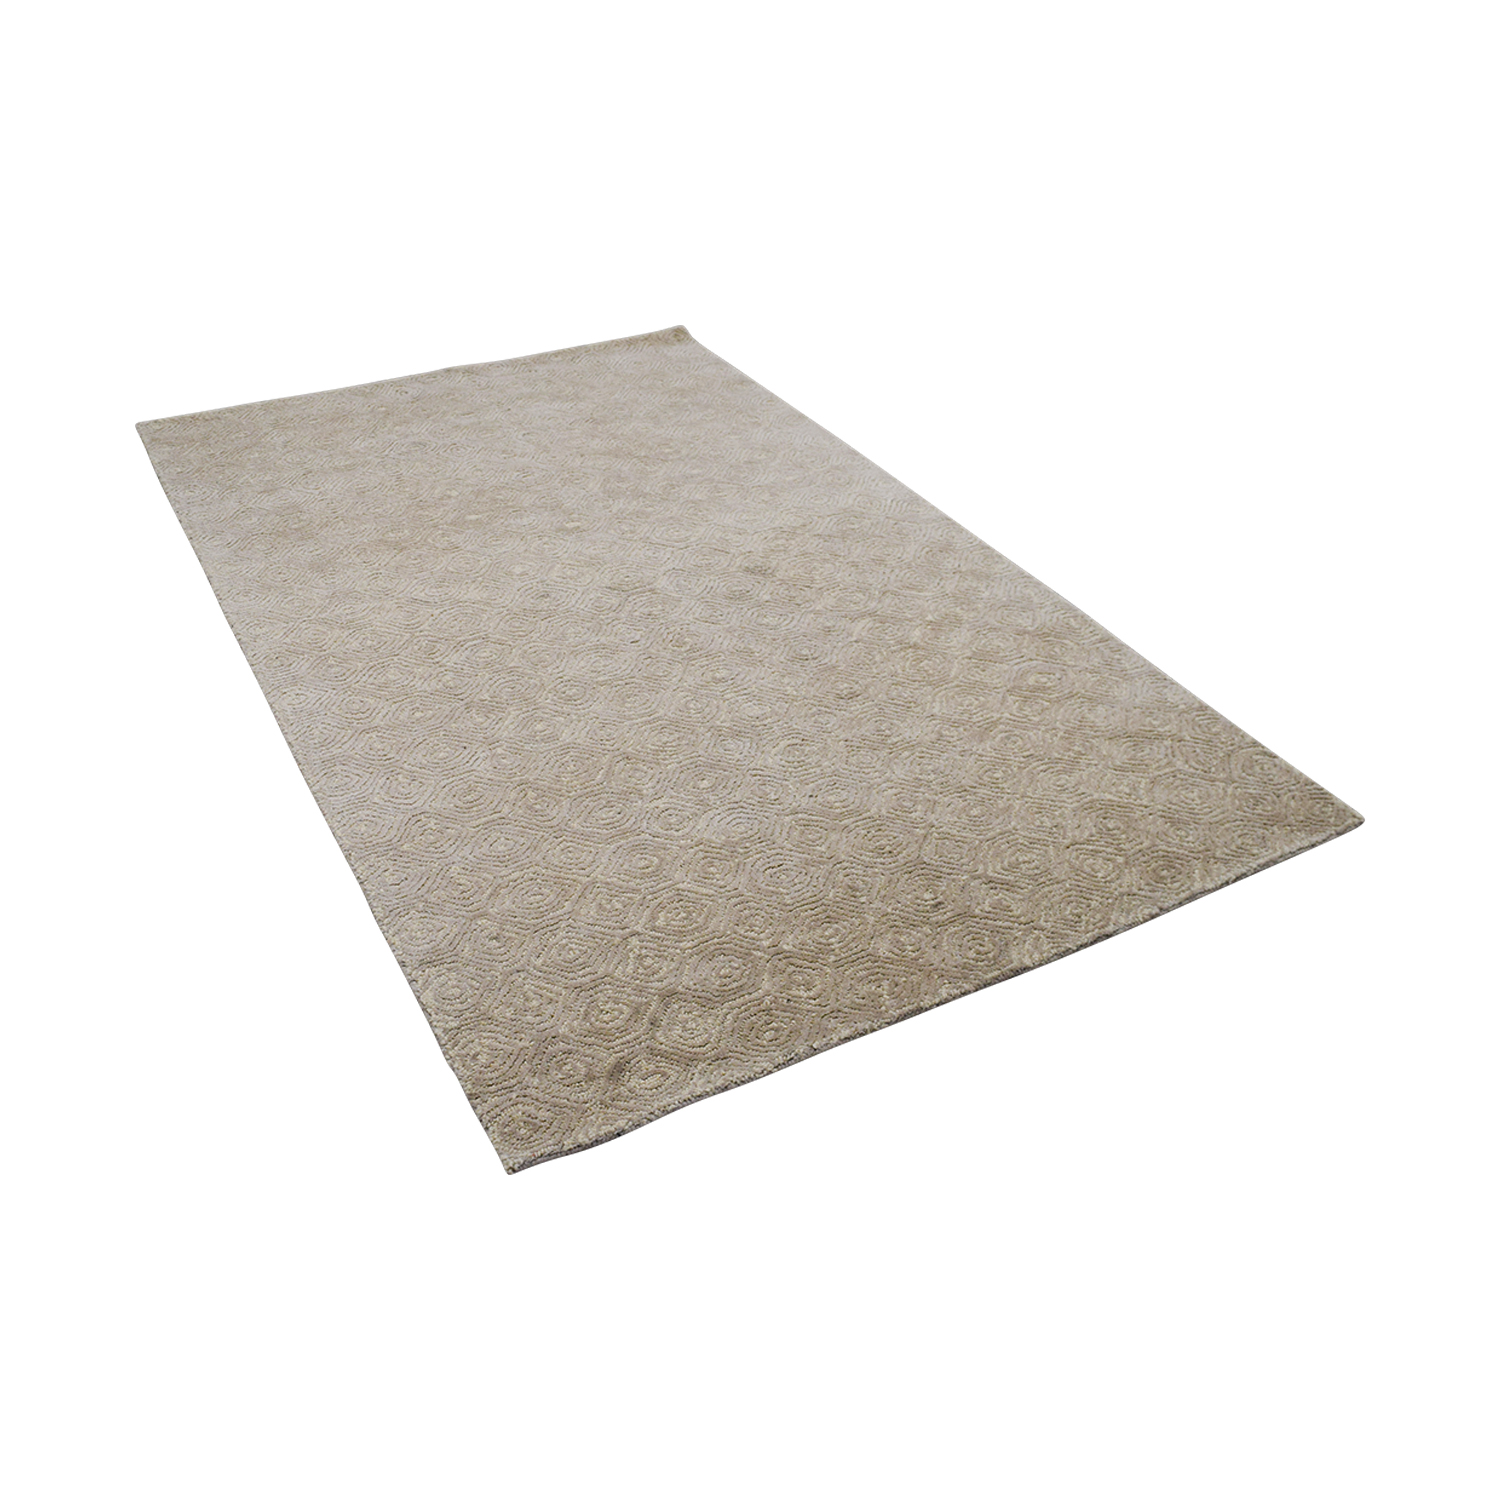 Obeetee Obeetee Off White with Spiral Design Rug on sale